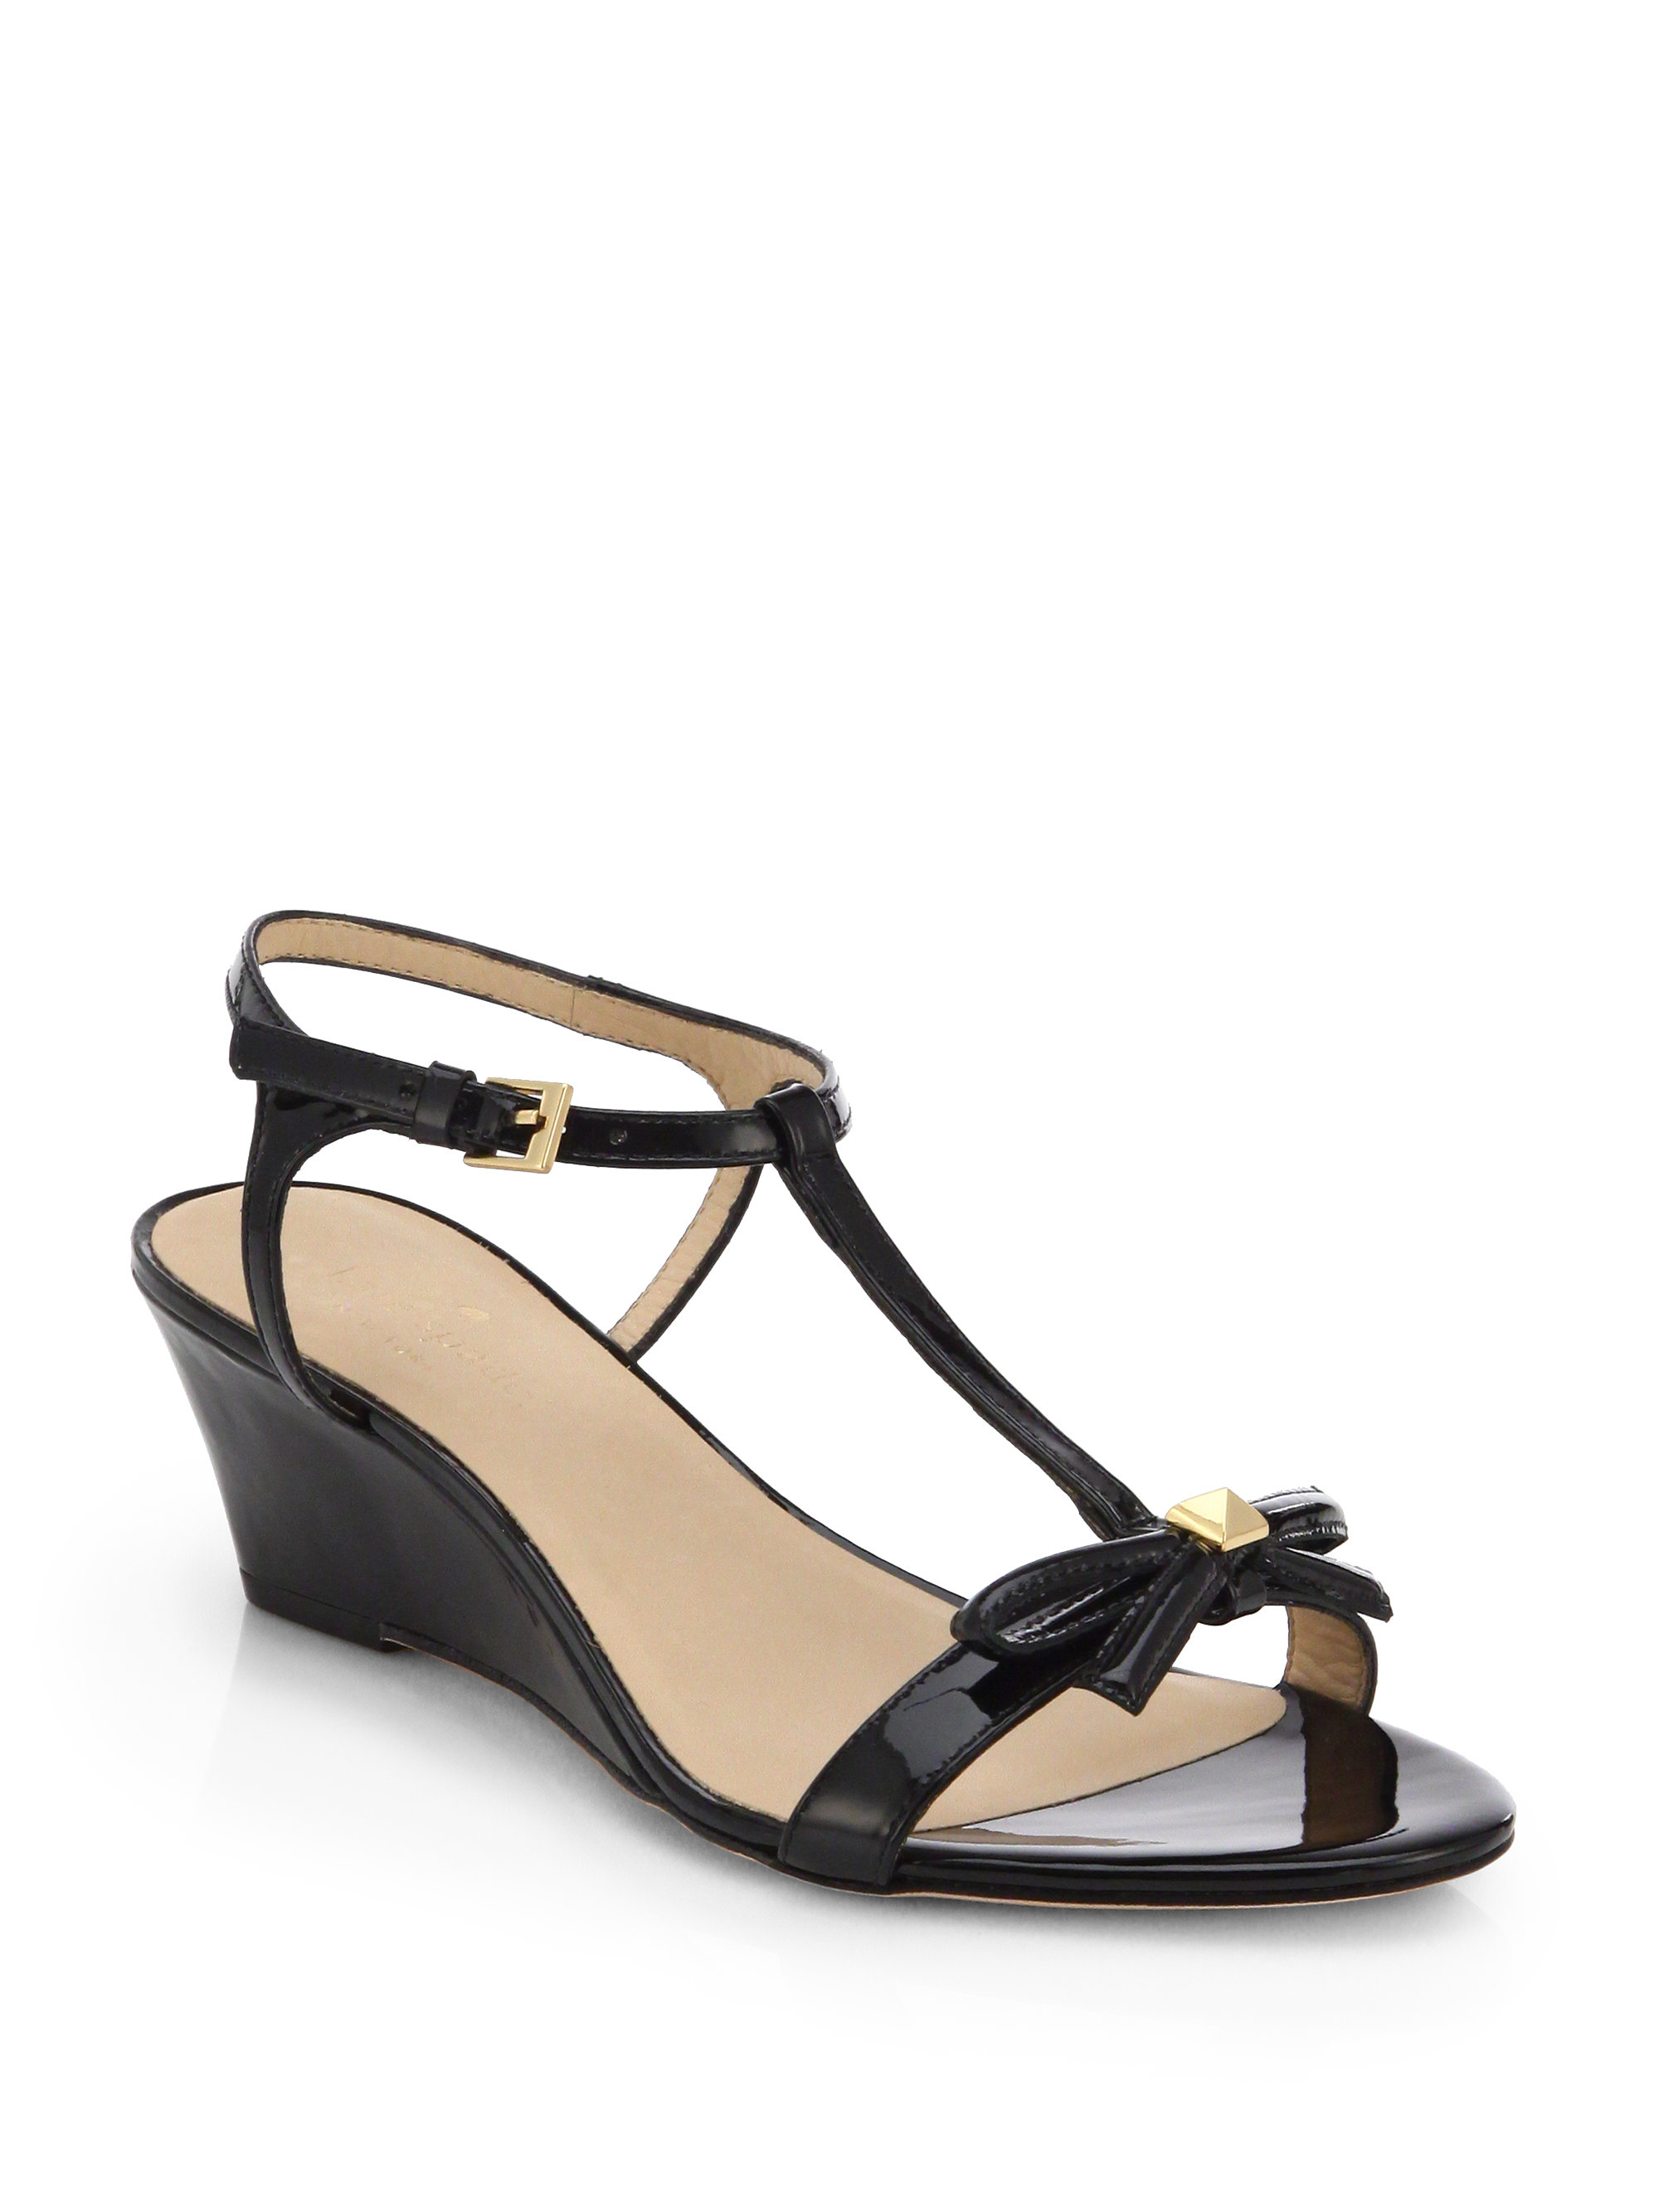 Lyst Kate Spade New York Donna Patent Leather Wedge